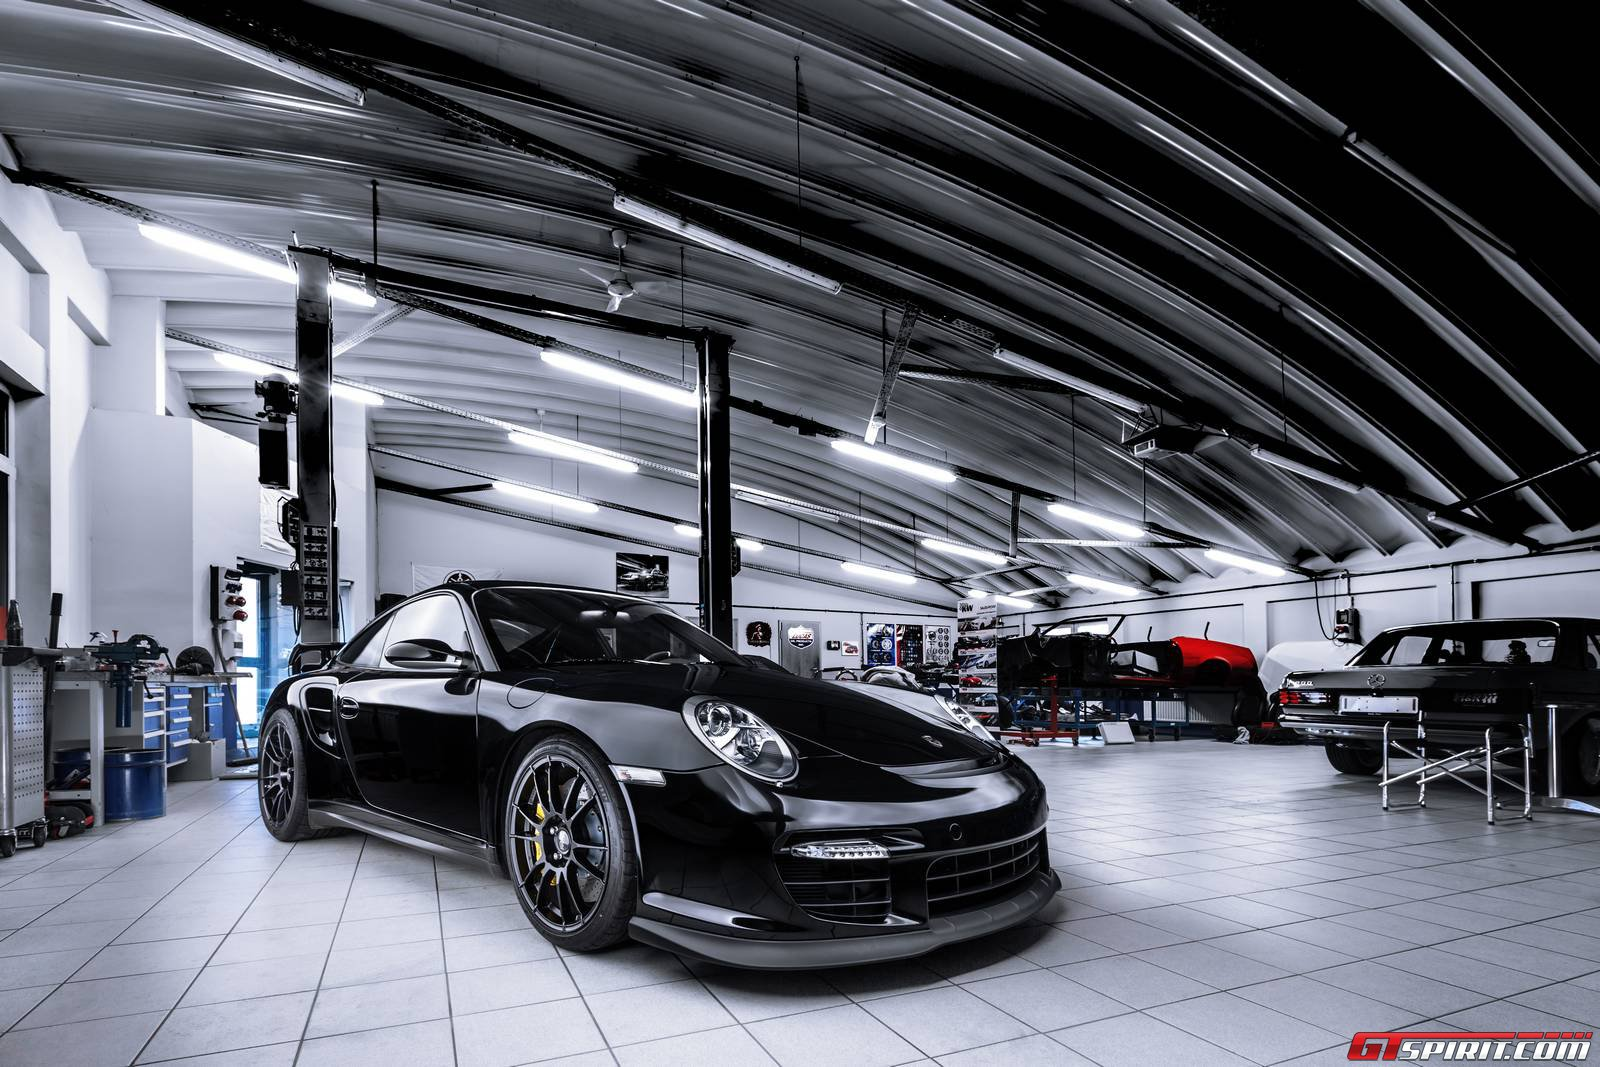 official porsche 911 gt2 clubsport by ok chiptuning gtspirit. Black Bedroom Furniture Sets. Home Design Ideas